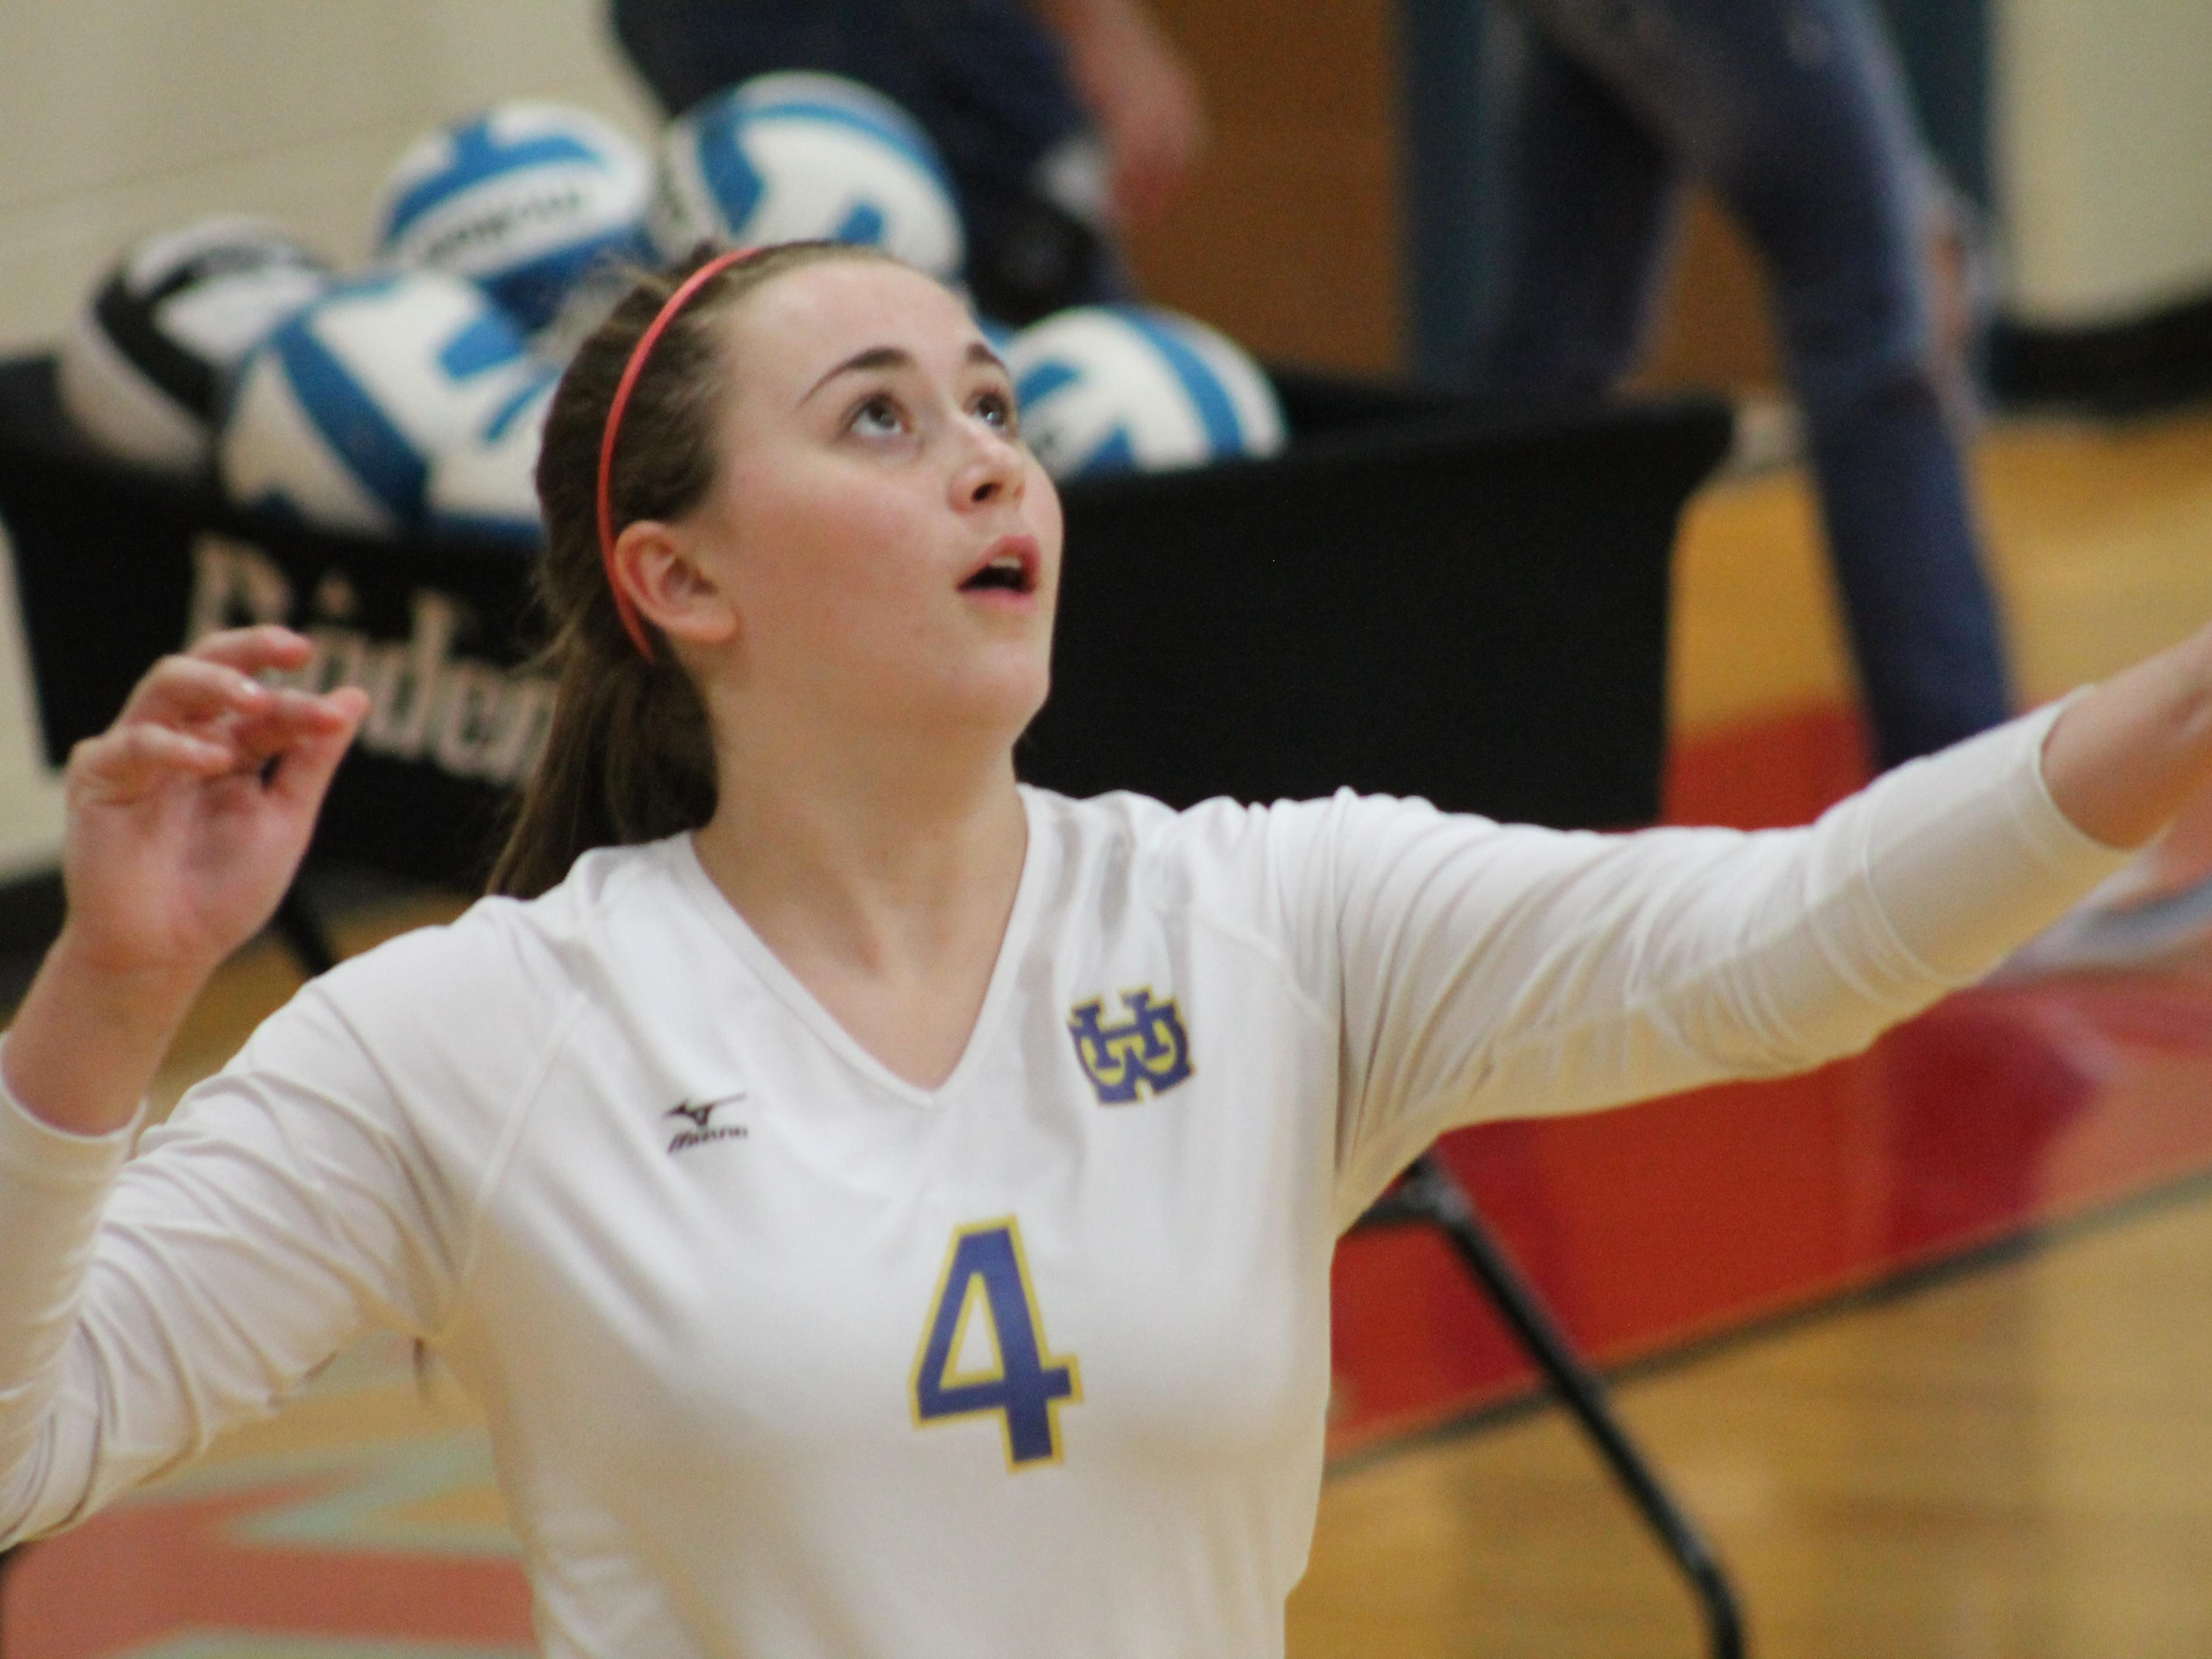 Walnut Hills hitter Molly Coughlan has committed to play at Southern Mississippi.